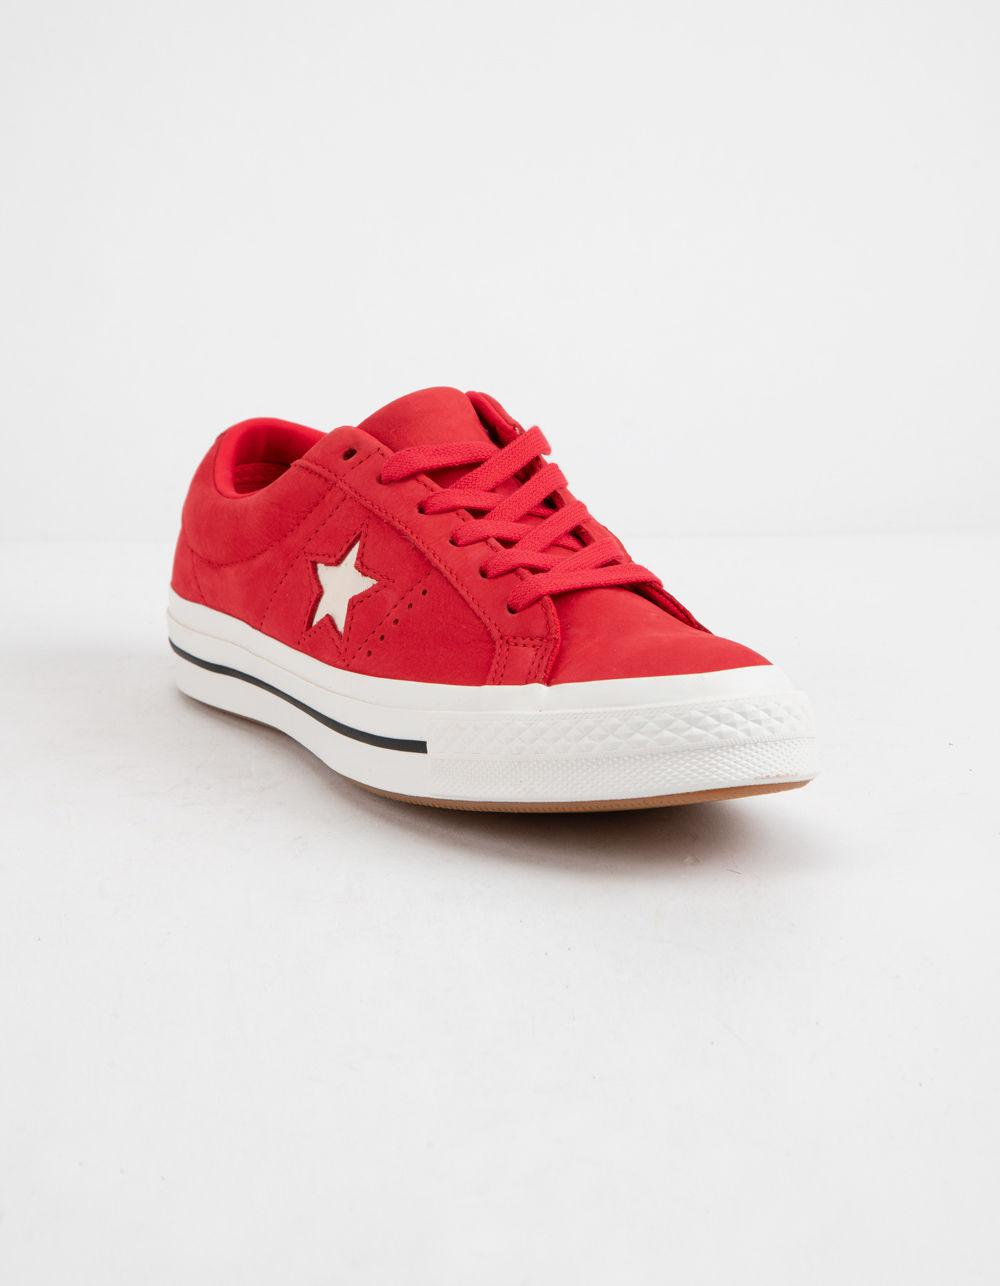 3268cfdf5e6b Lyst - Converse One Star Ox Cherry Red   Vintage White Womens Low Top Shoes  in Red